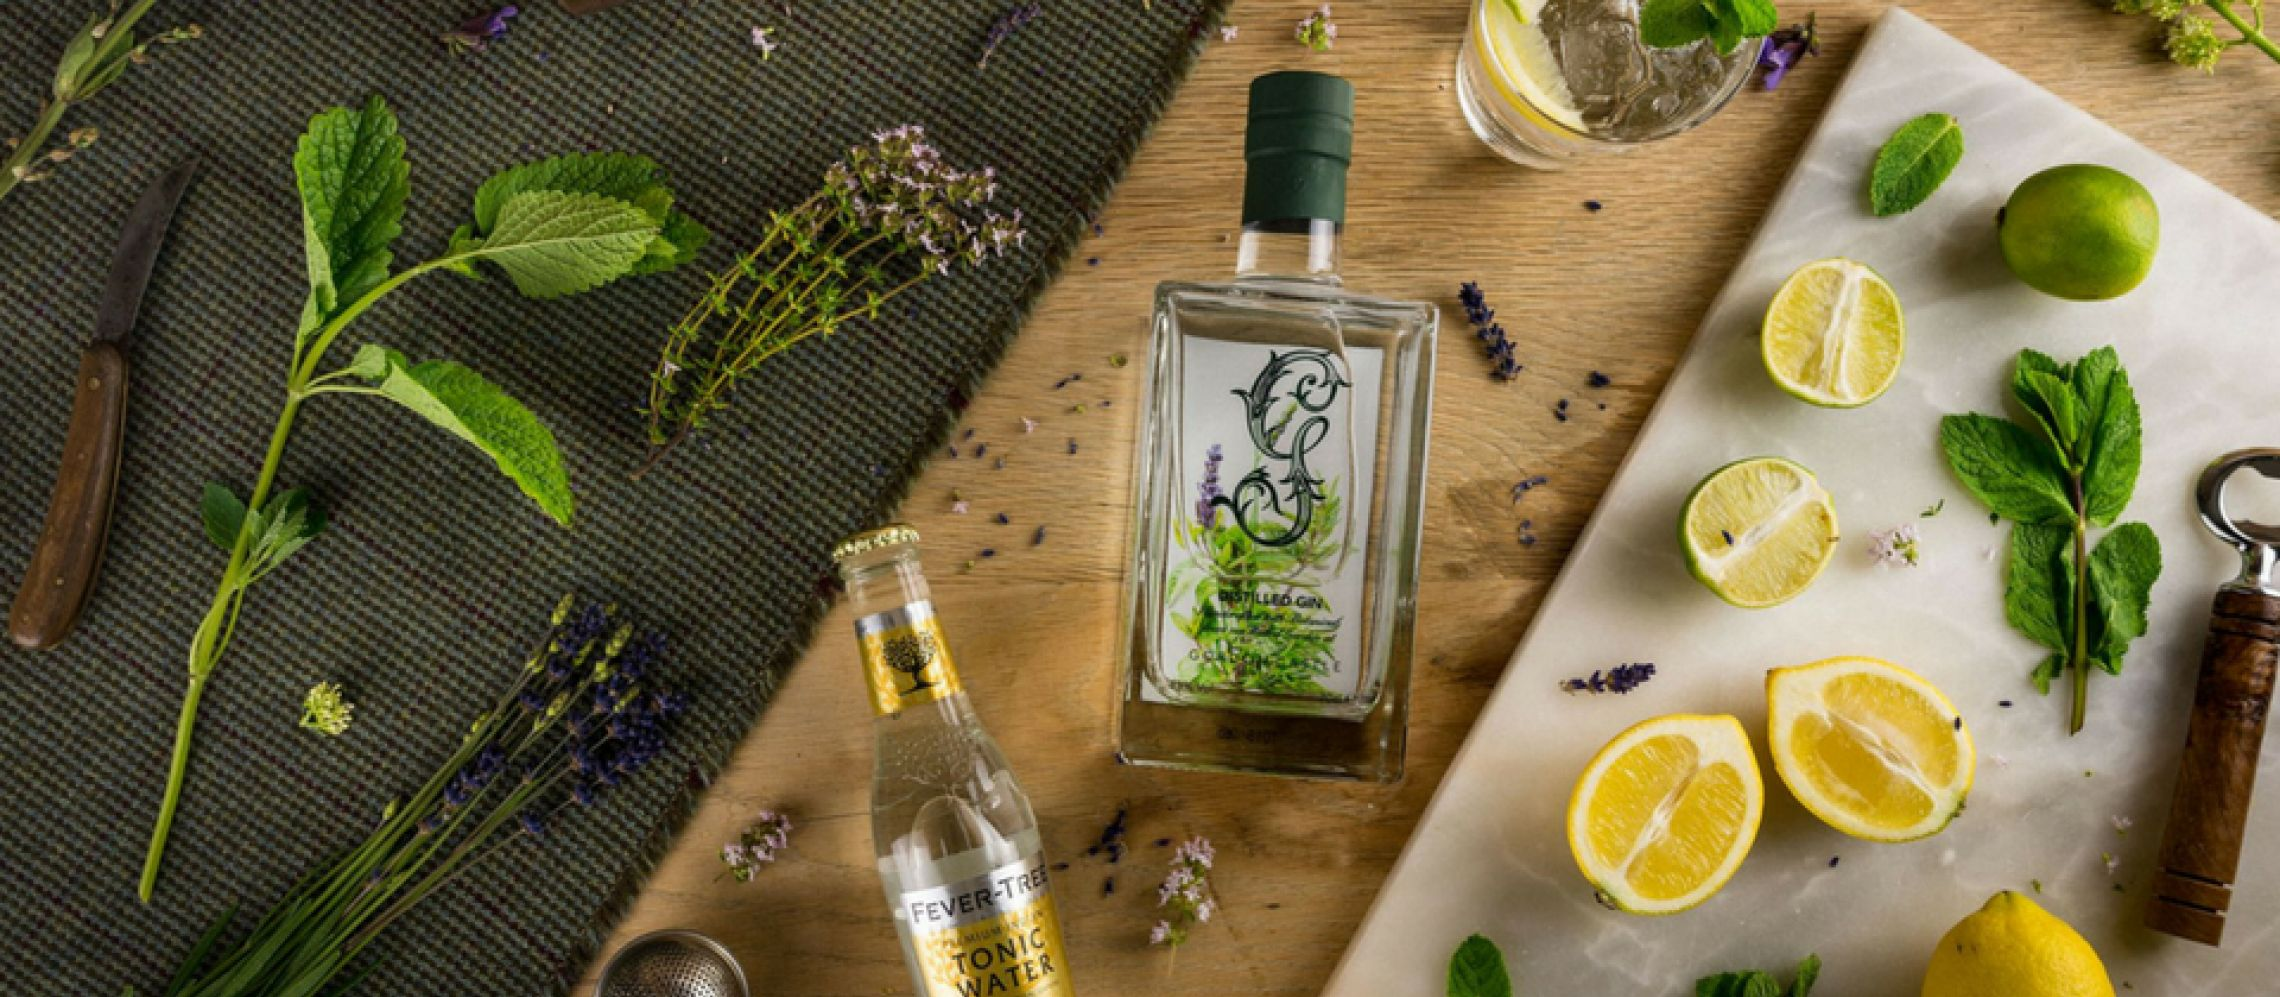 Photo for: An Exclusive Brand Producing Award-Winning Gin In Scotland